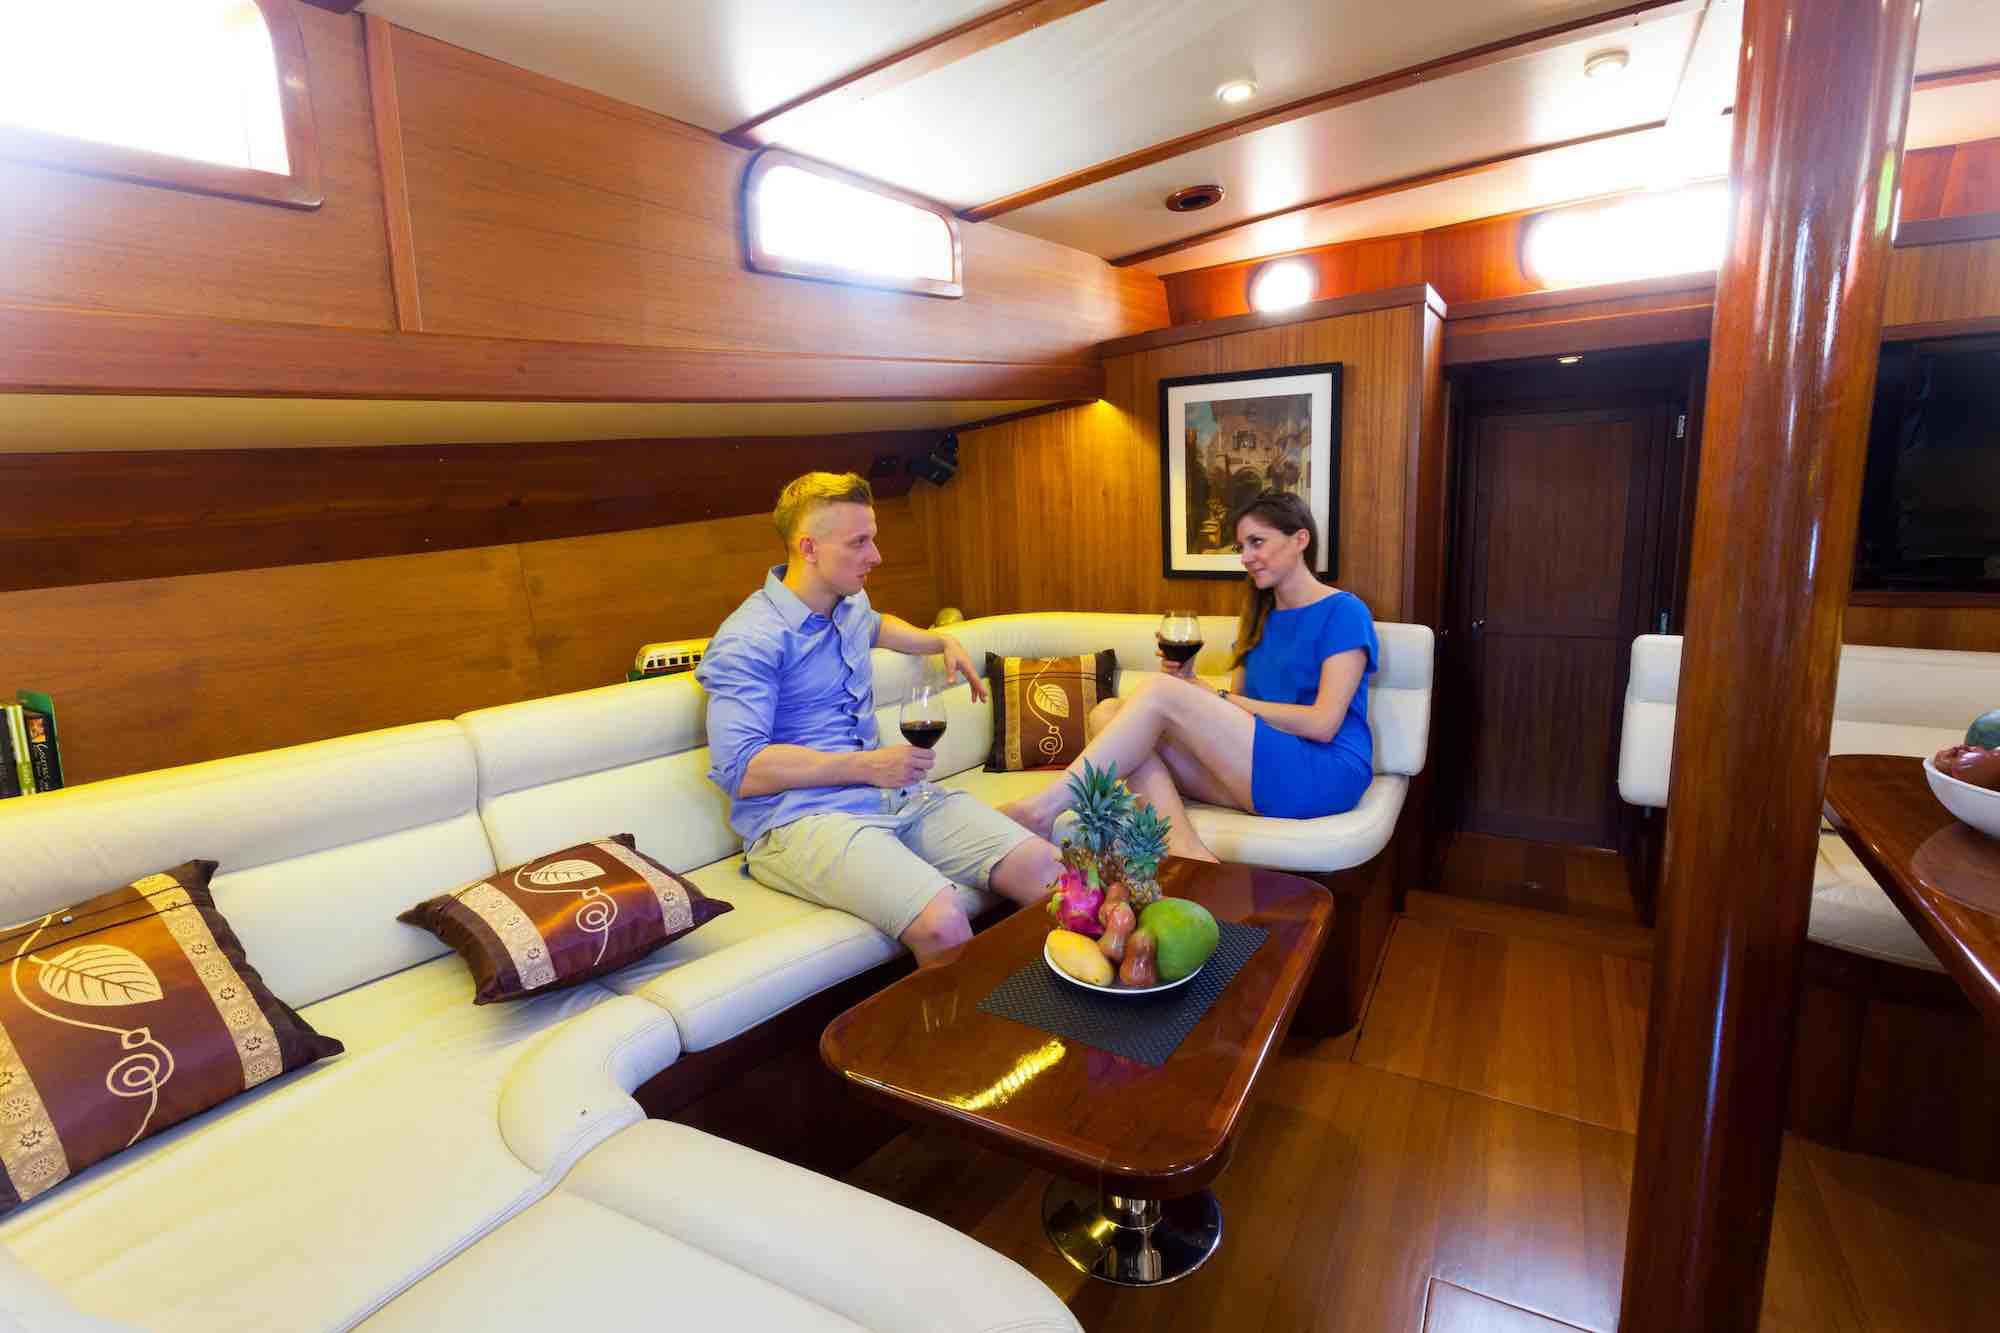 Jubilaeum_guest couple relaxing at lounge area on boat sailing in Moken_XS.jpeg